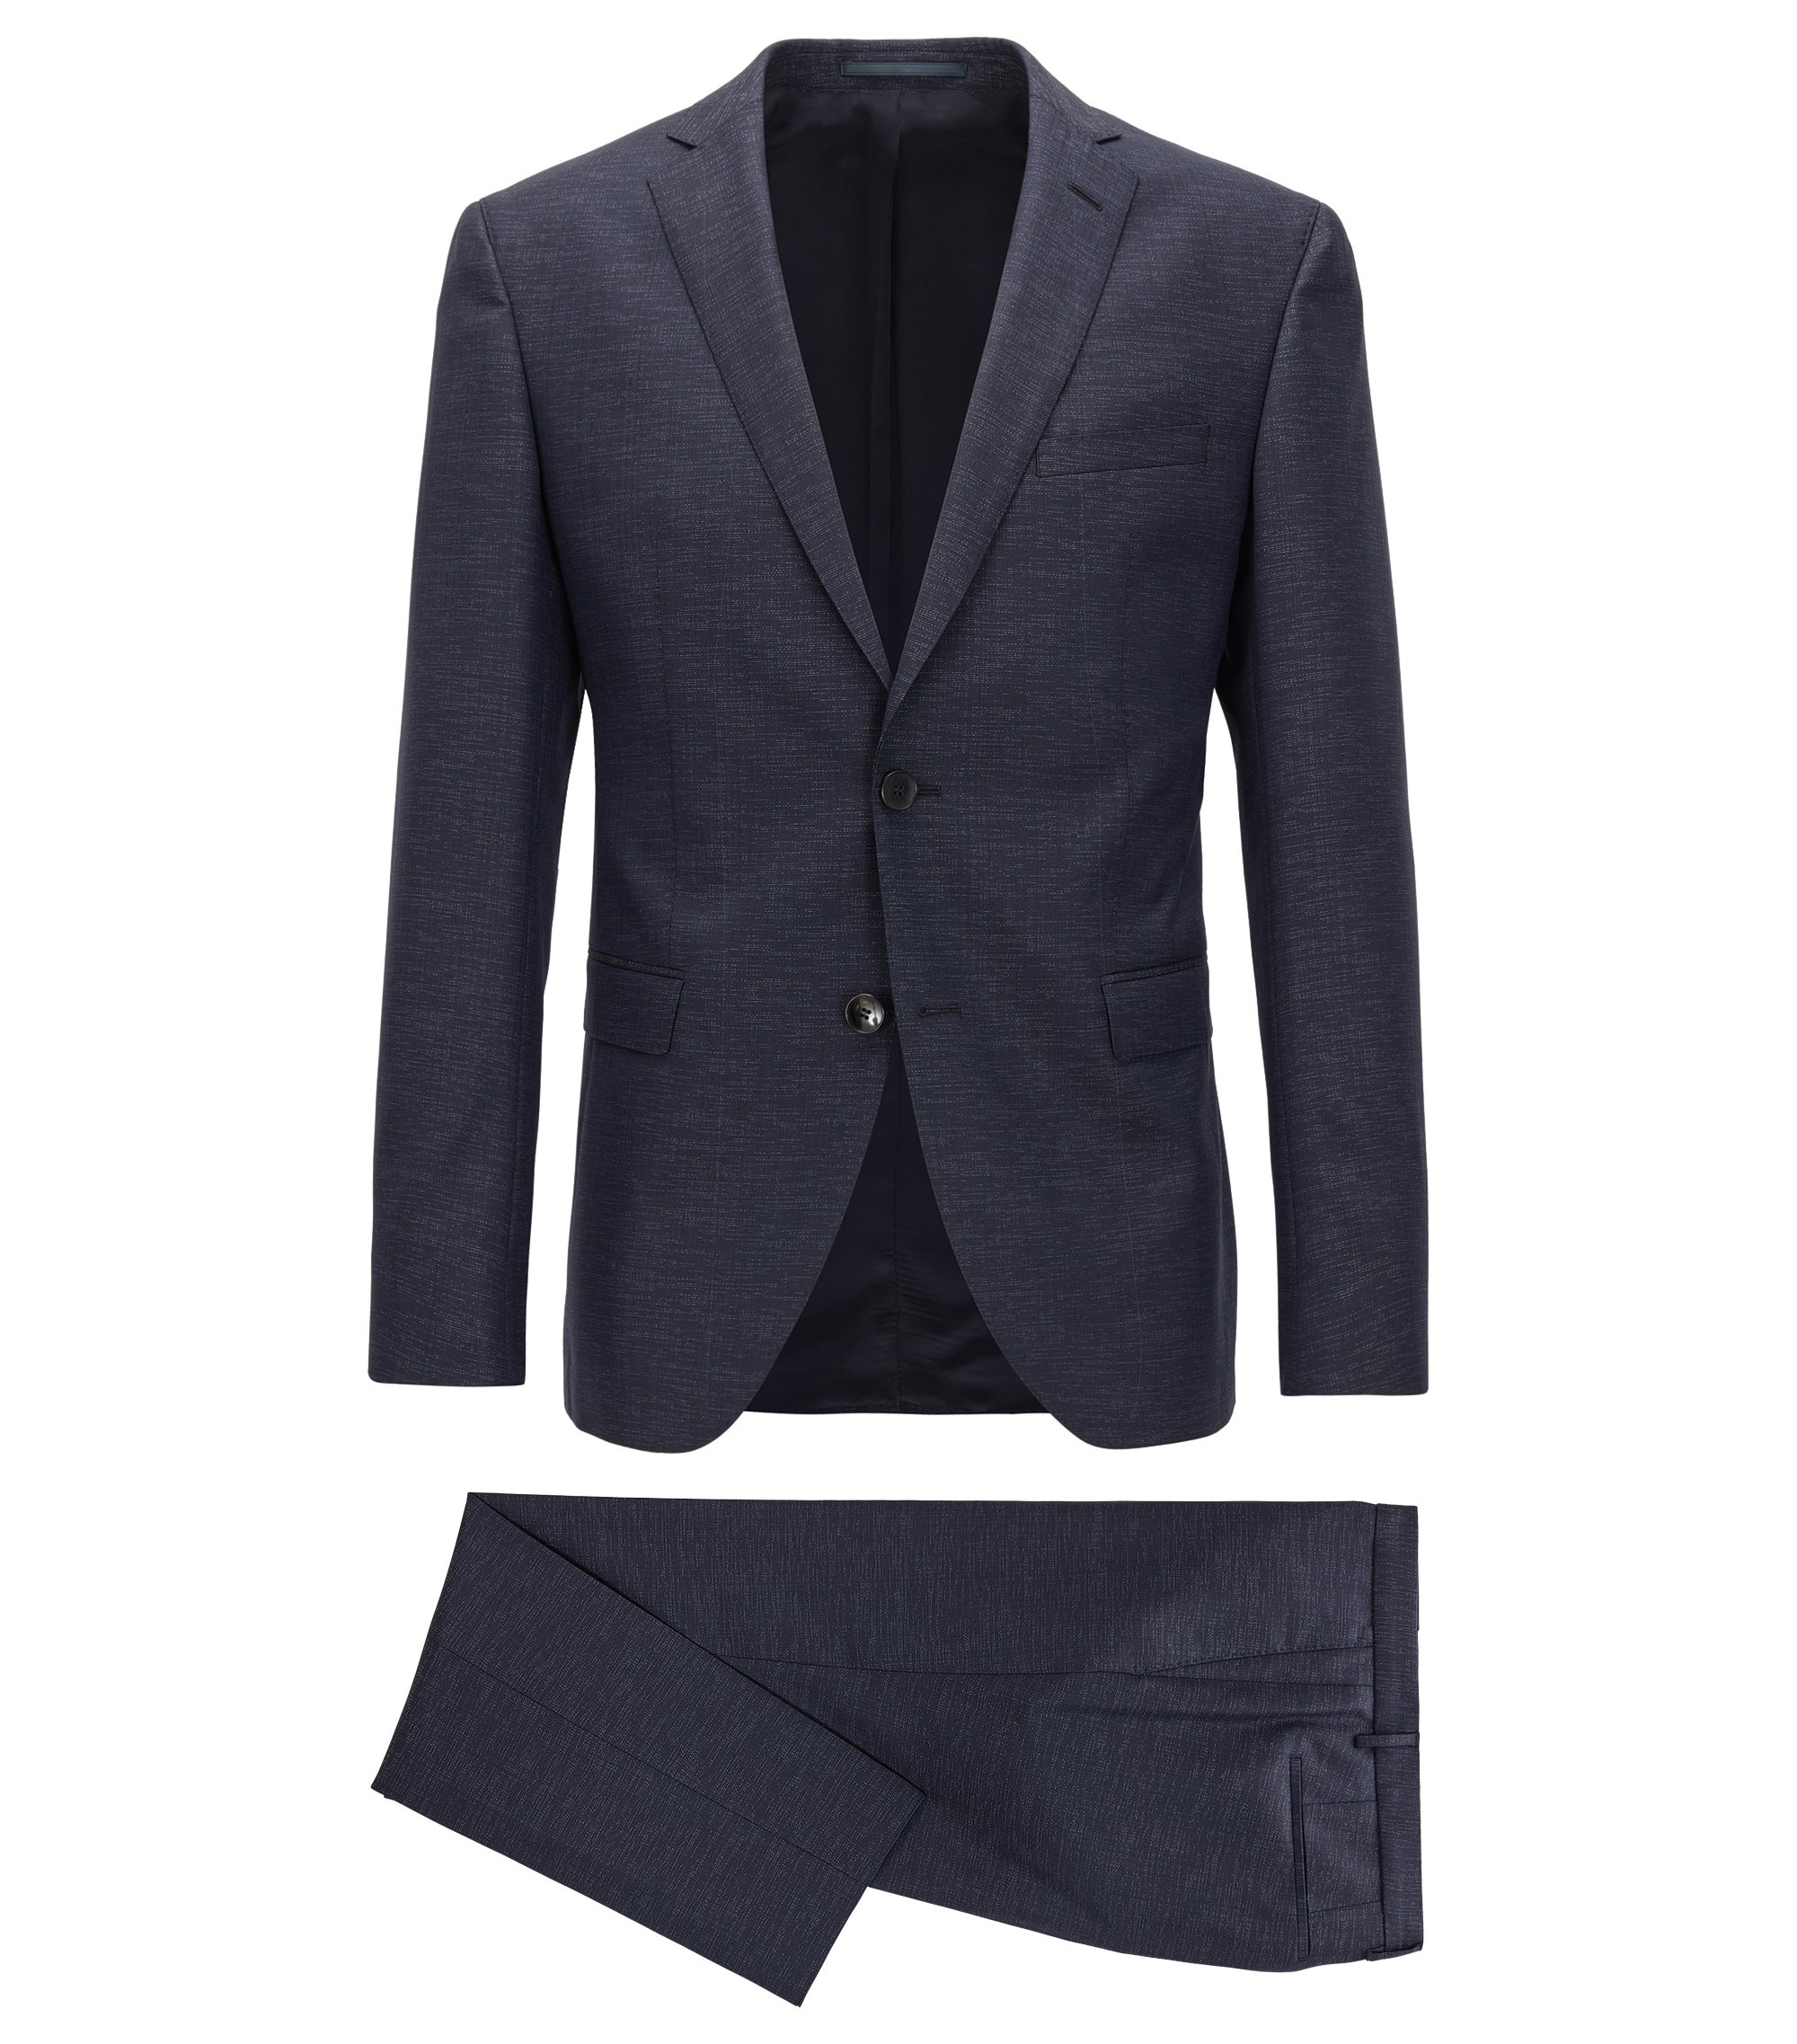 Wool Blend Suit, Extra Slim Fit | Reyno/Wave, Dark Blue